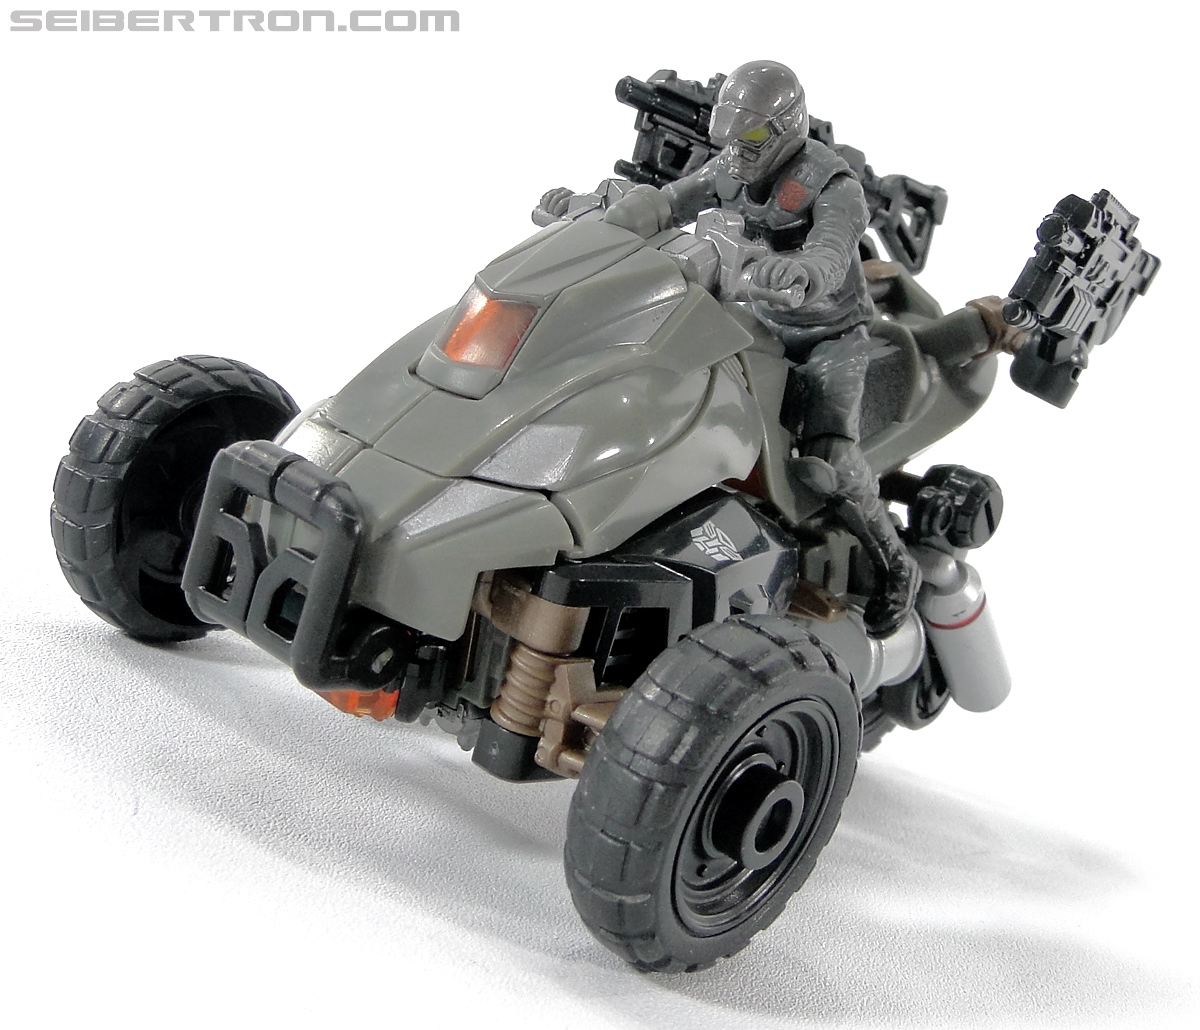 Transformers Dark of the Moon Spike Witwicky (Image #48 of 70)